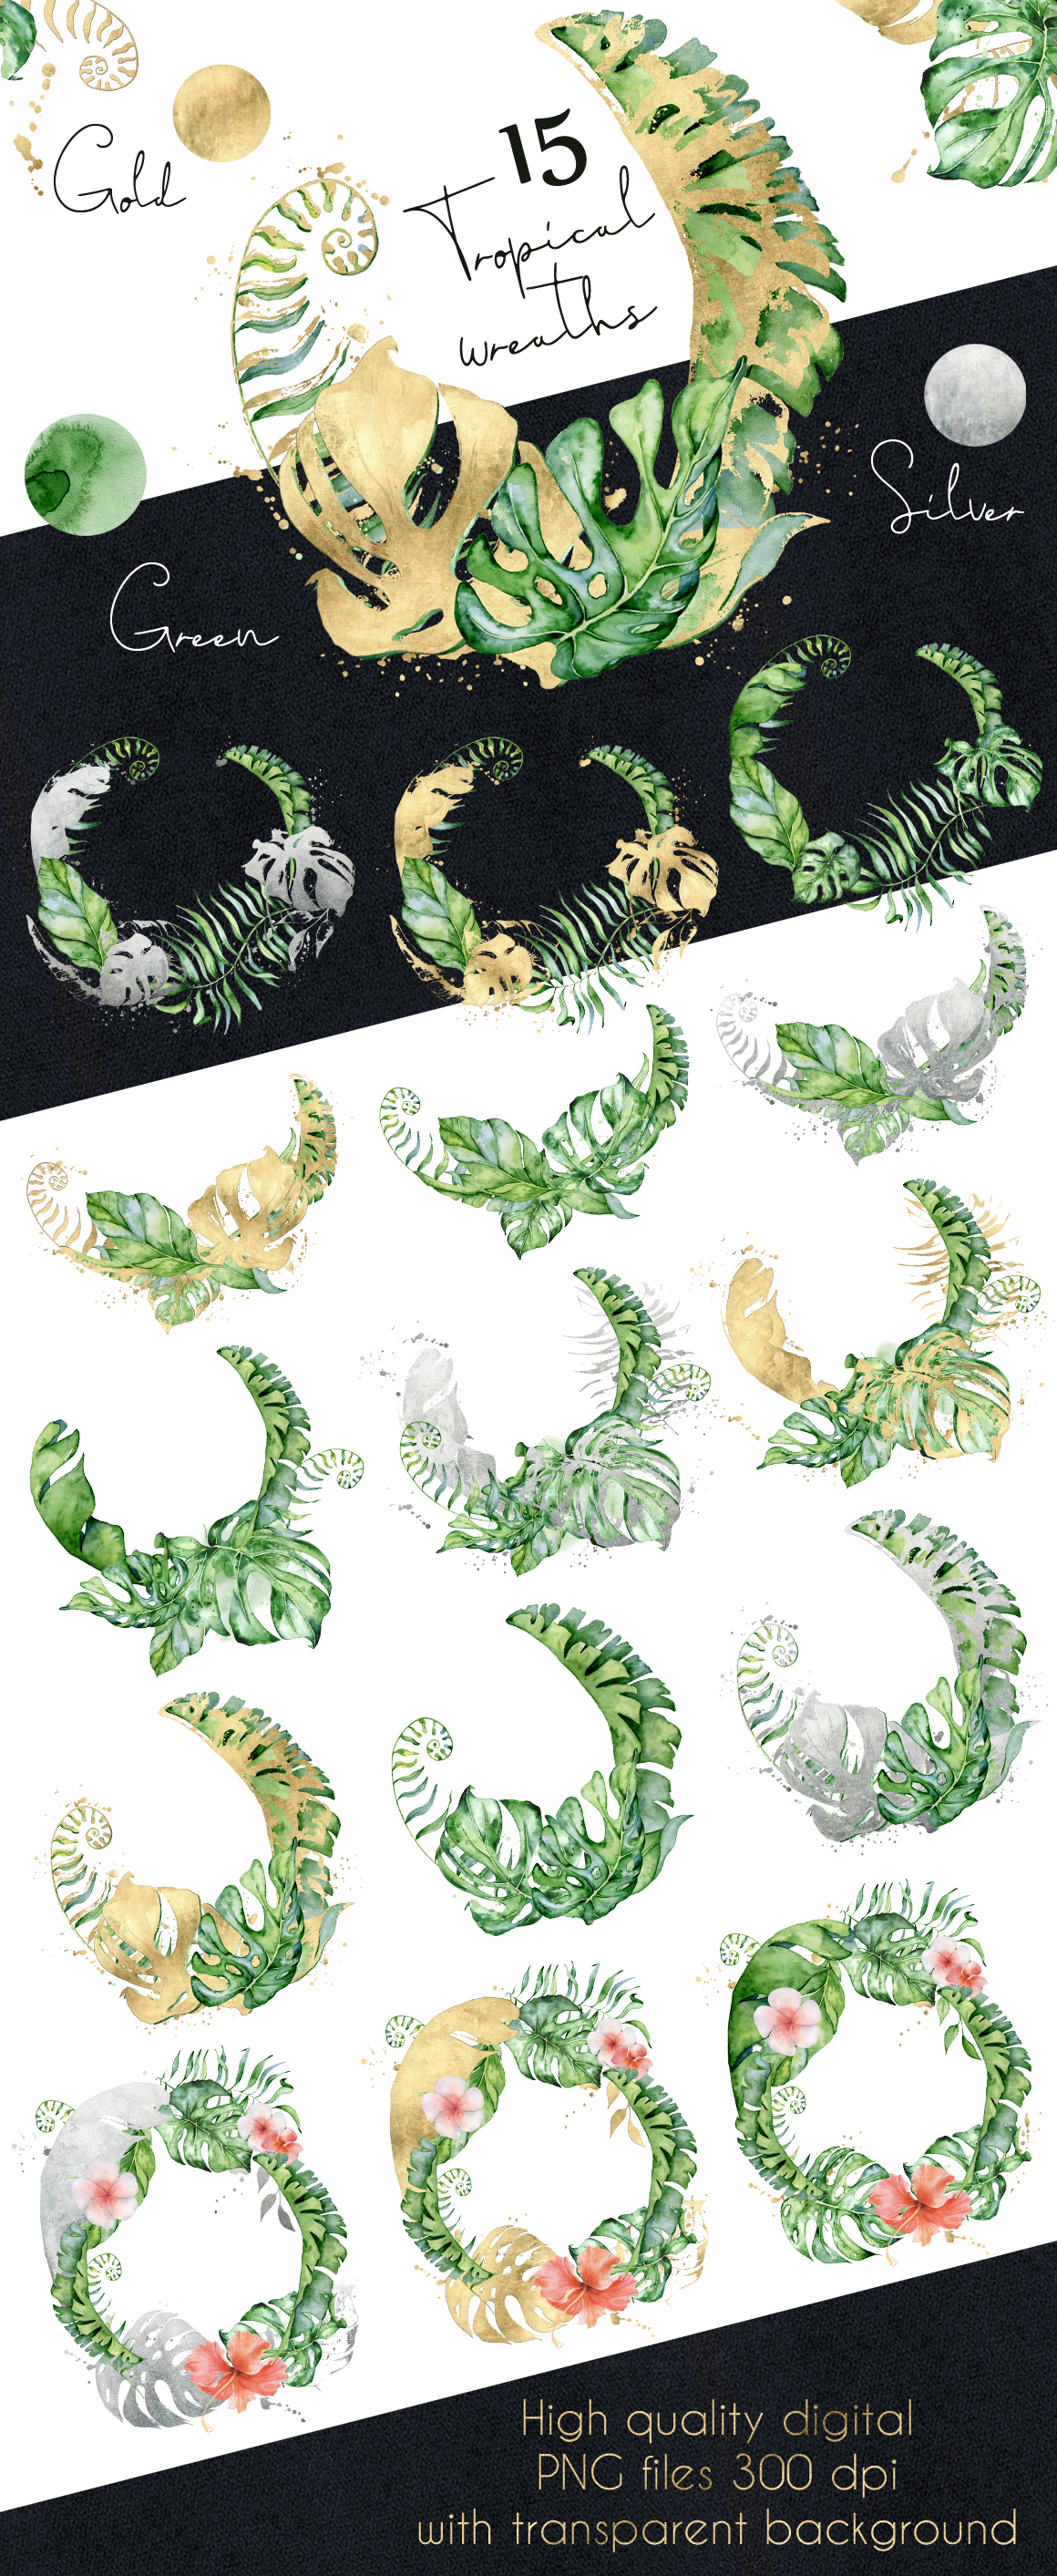 Mistery Monstera - tropical leaves watercolor illustration example image 30